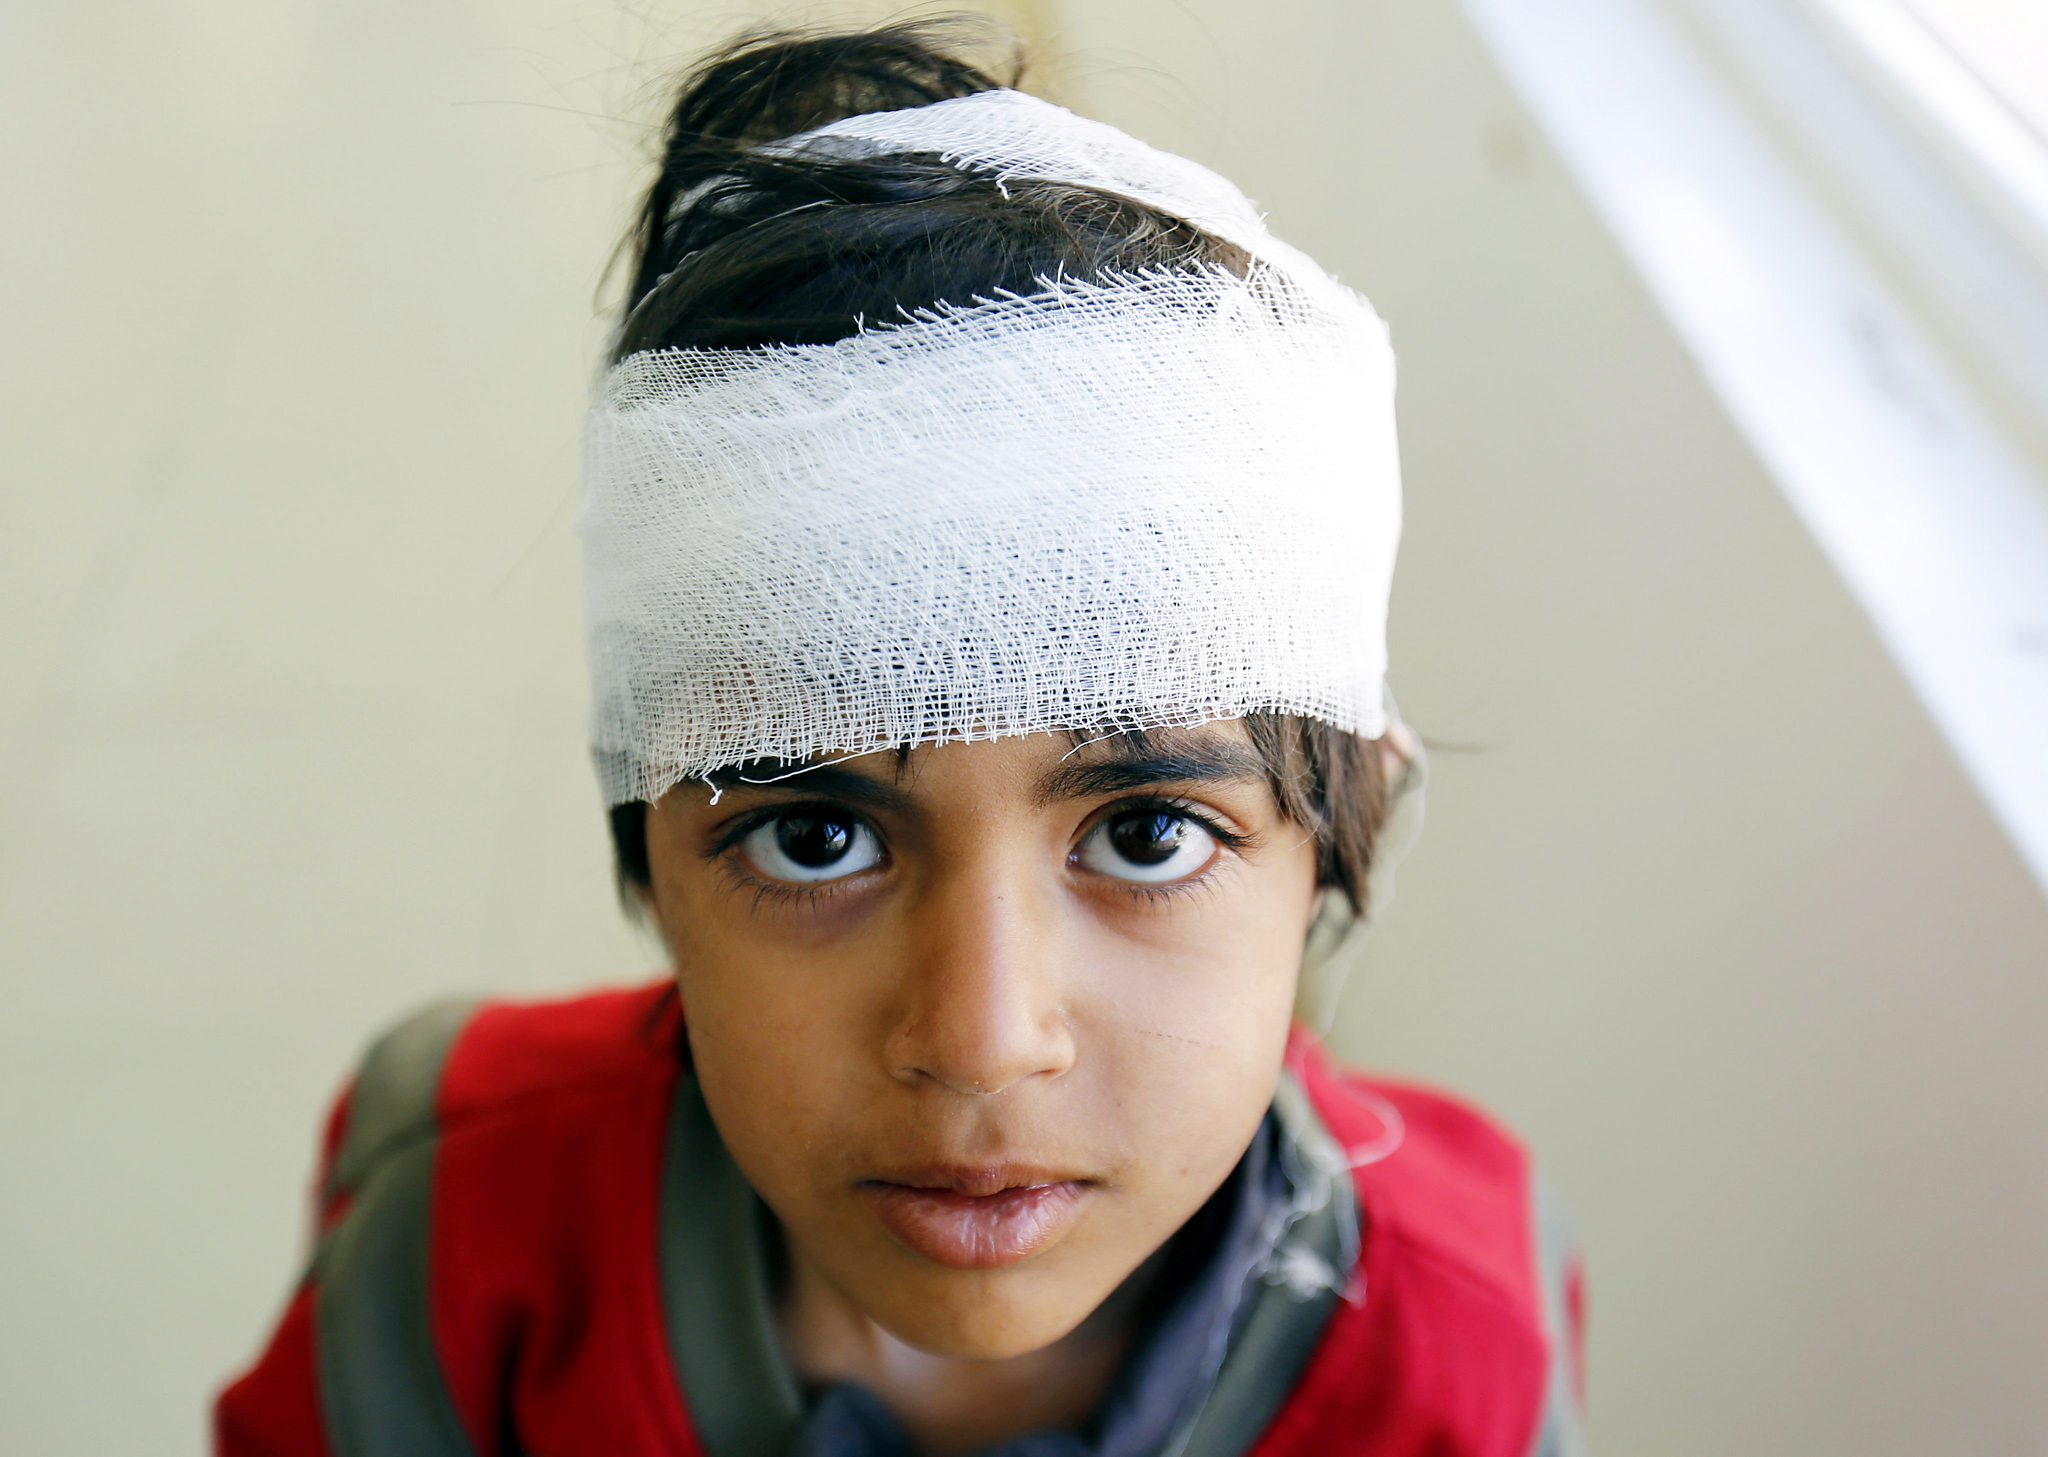 Saudi-led ongoing conflict victims in Yemen...epa05149787 A wounded boy poses for a picture at a hospital after he was injured in ongoing conflict, in Sanaía, Yemen, 08 February 2016. United Nations figures show nearly 6000 people have been killed and more than 32,000 injured so far in the ten-month conflict in the war-torn Yemen since March when the Saudi-led coalition launched a military campaign against the Shiite Houthi rebels.  EPA/YAHYA ARHAB